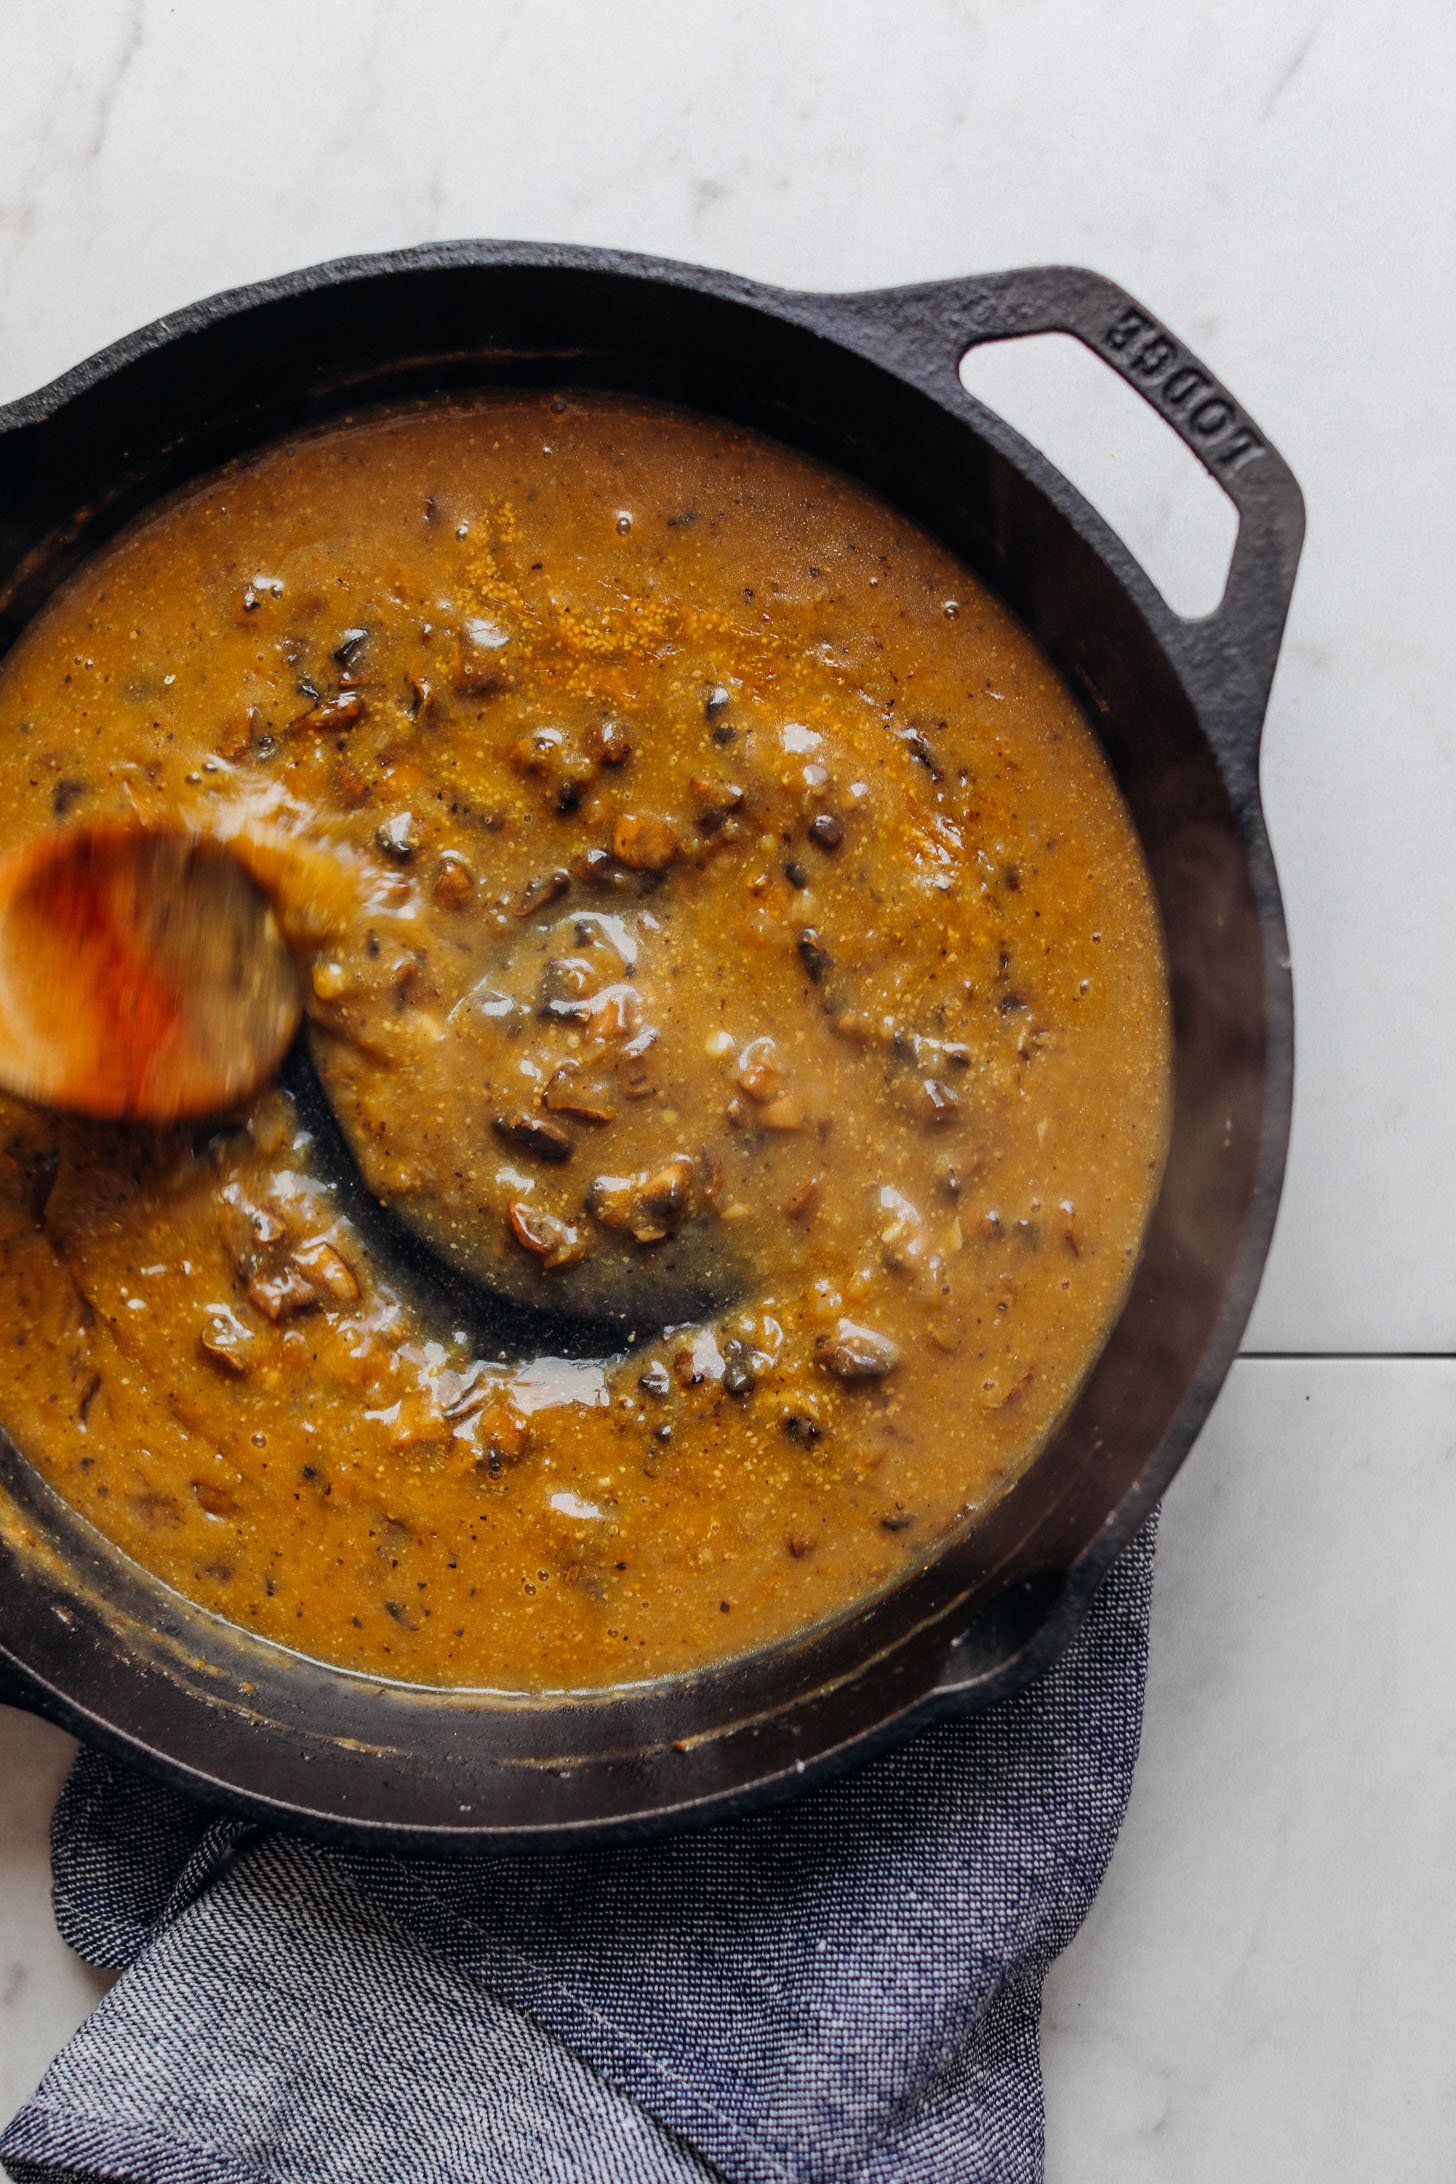 Using a wooden spoon to stir mushroom gravy in a cast iron skillet